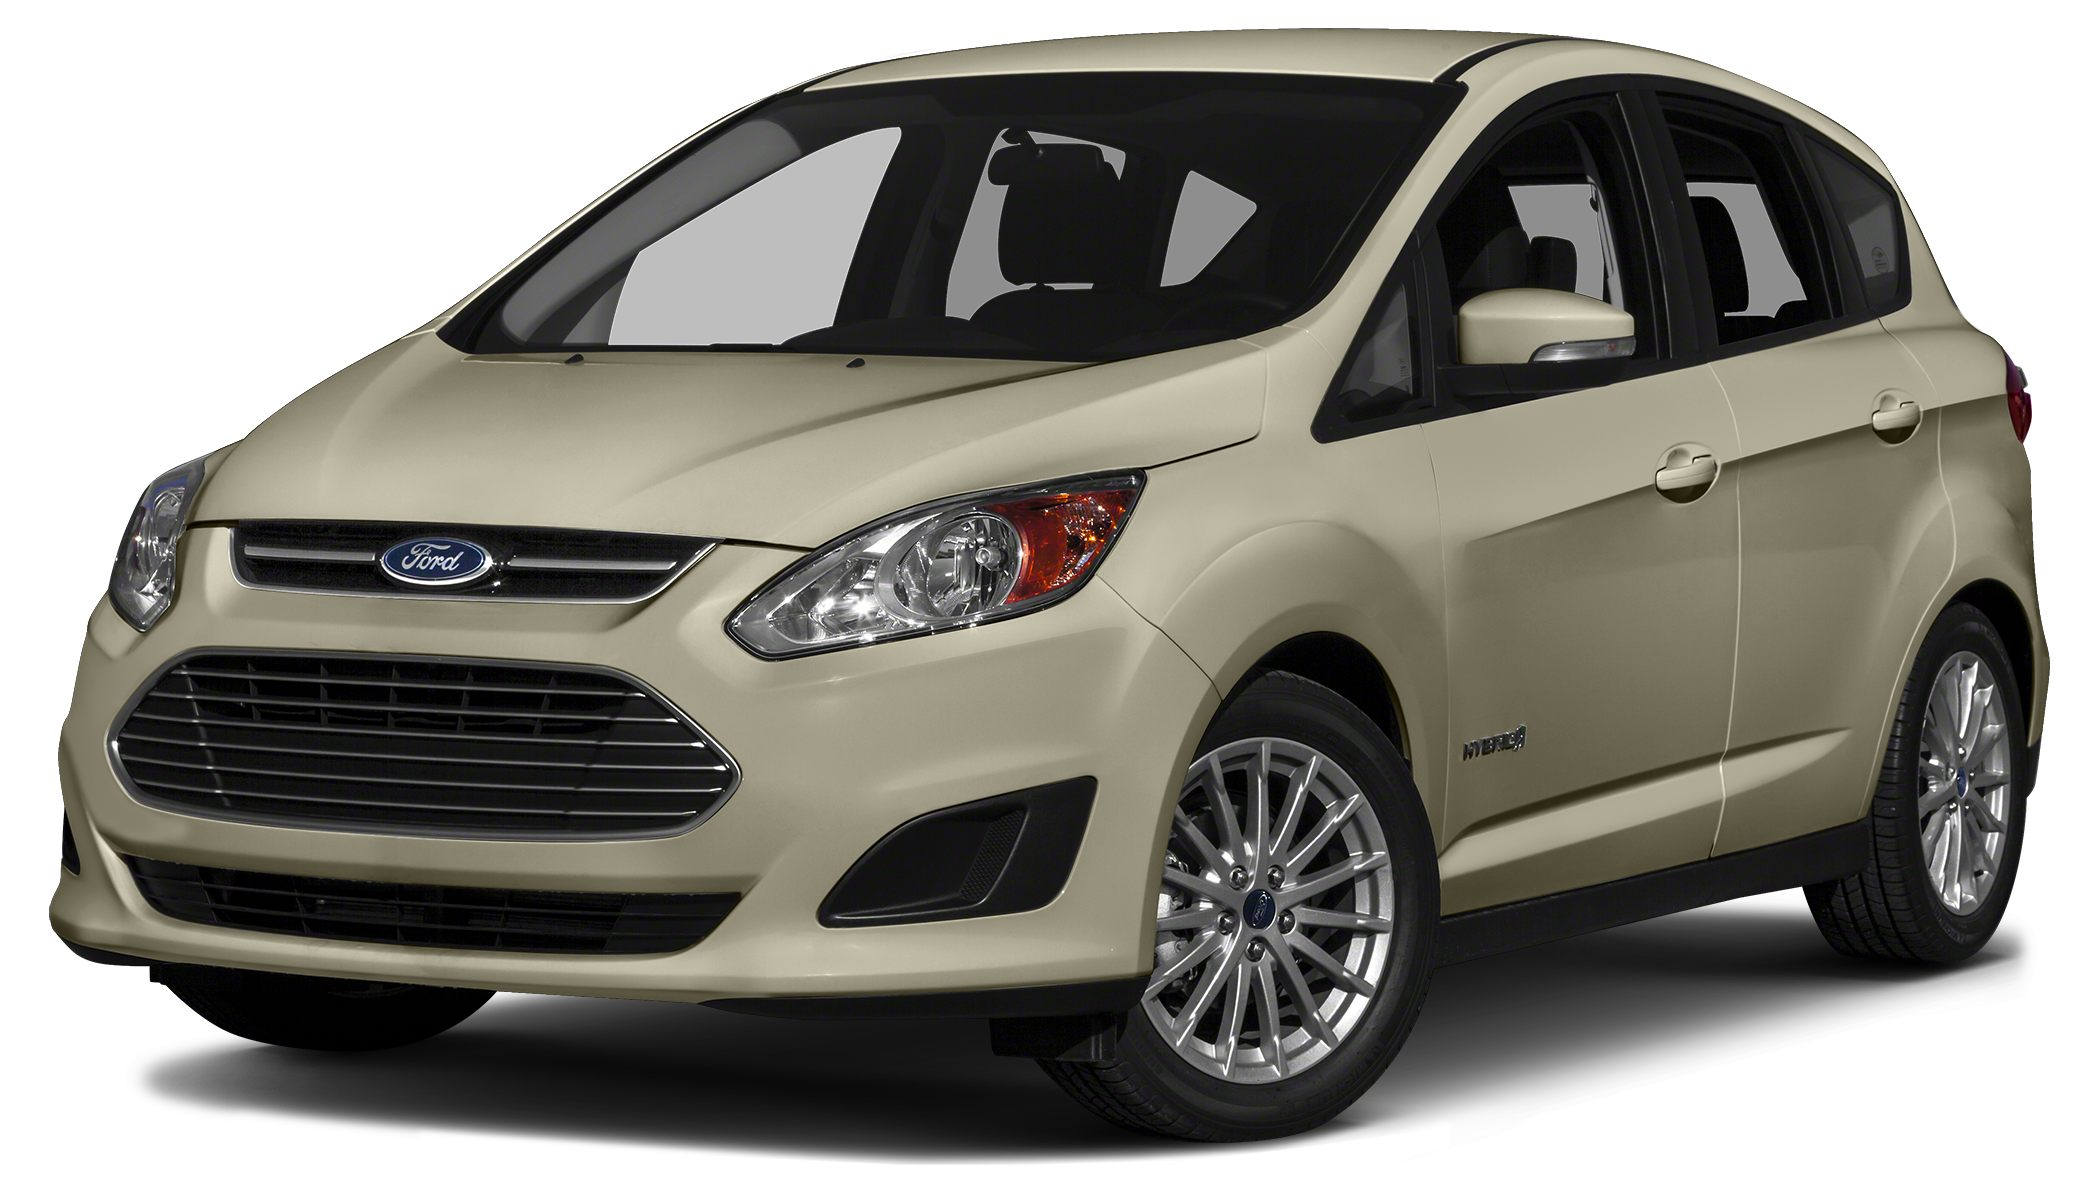 2016 Ford C-Max Hybrid SE Looking for a new car at an affordable price Introducing the 2016 Ford